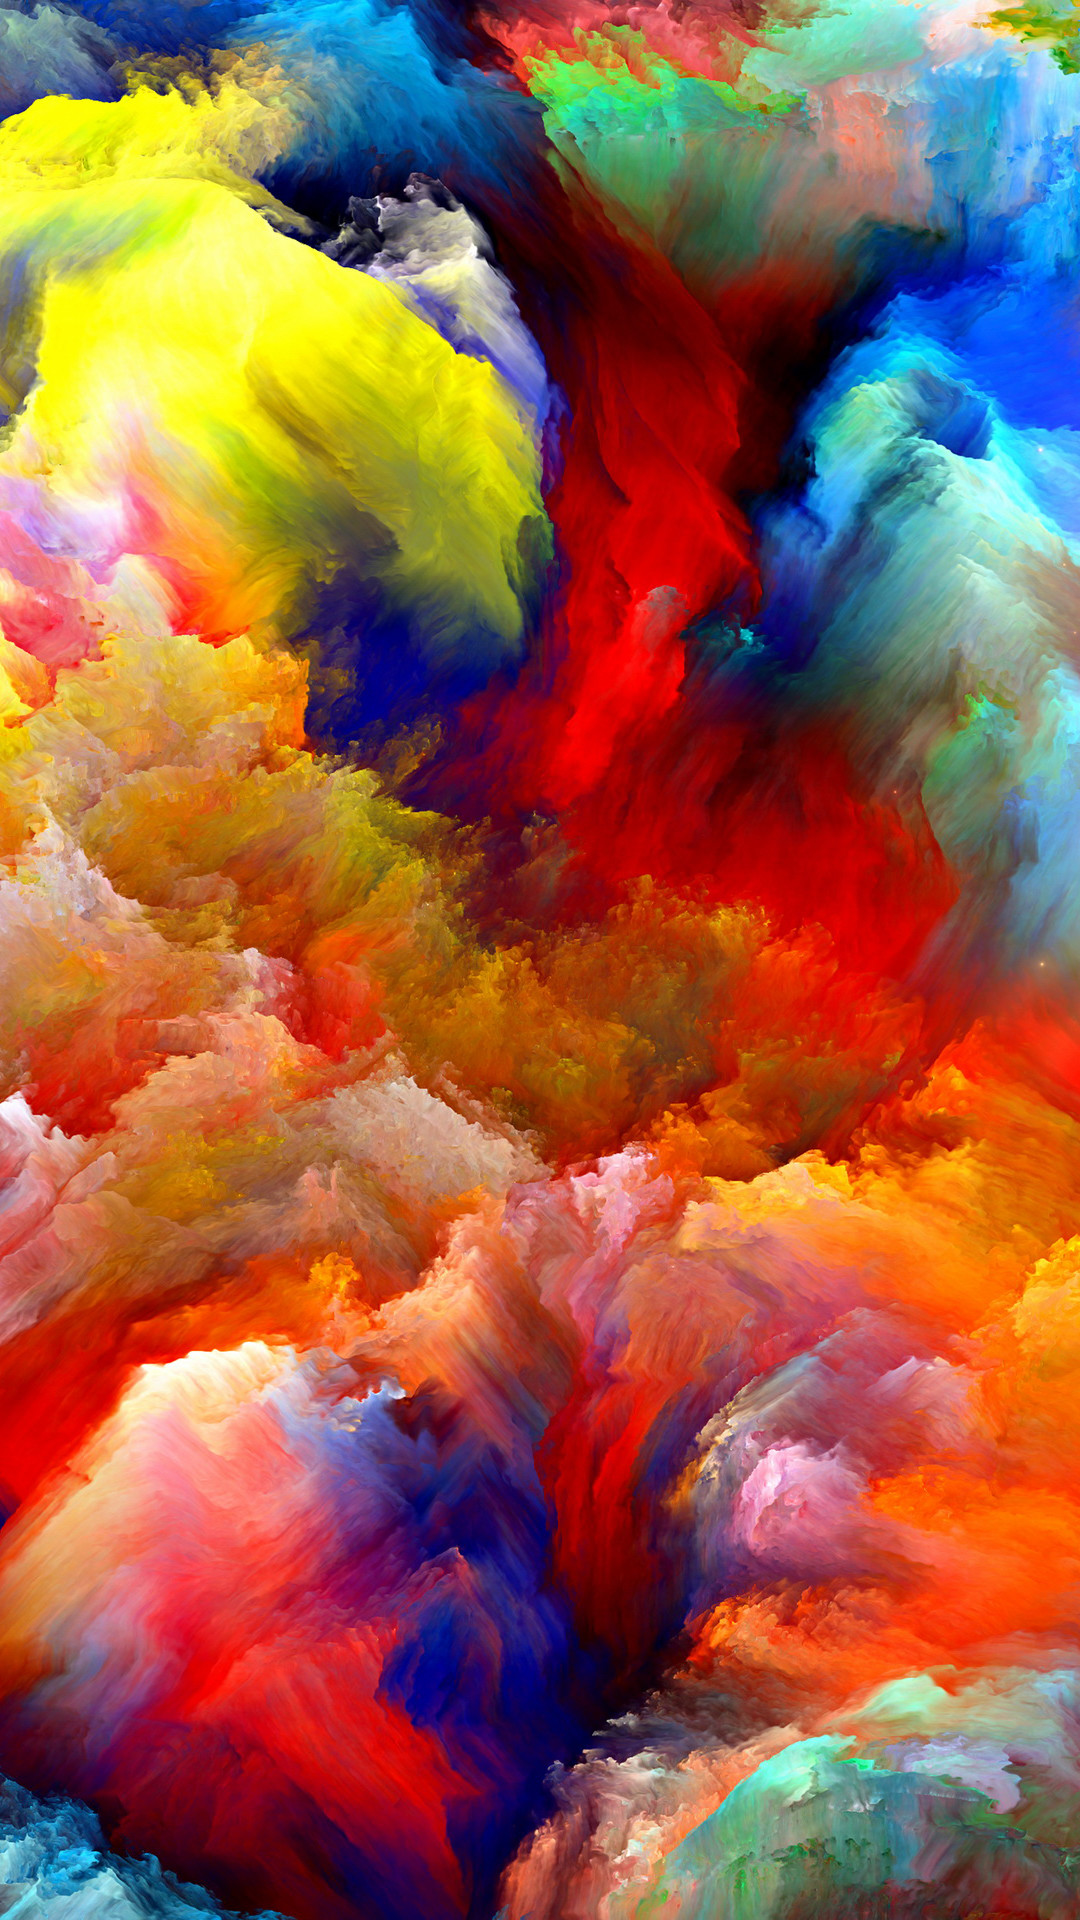 70892a3ad8b 1080x1920 Oil Painting Colorful Strokes iPhone 6 Plus HD Wallpaper